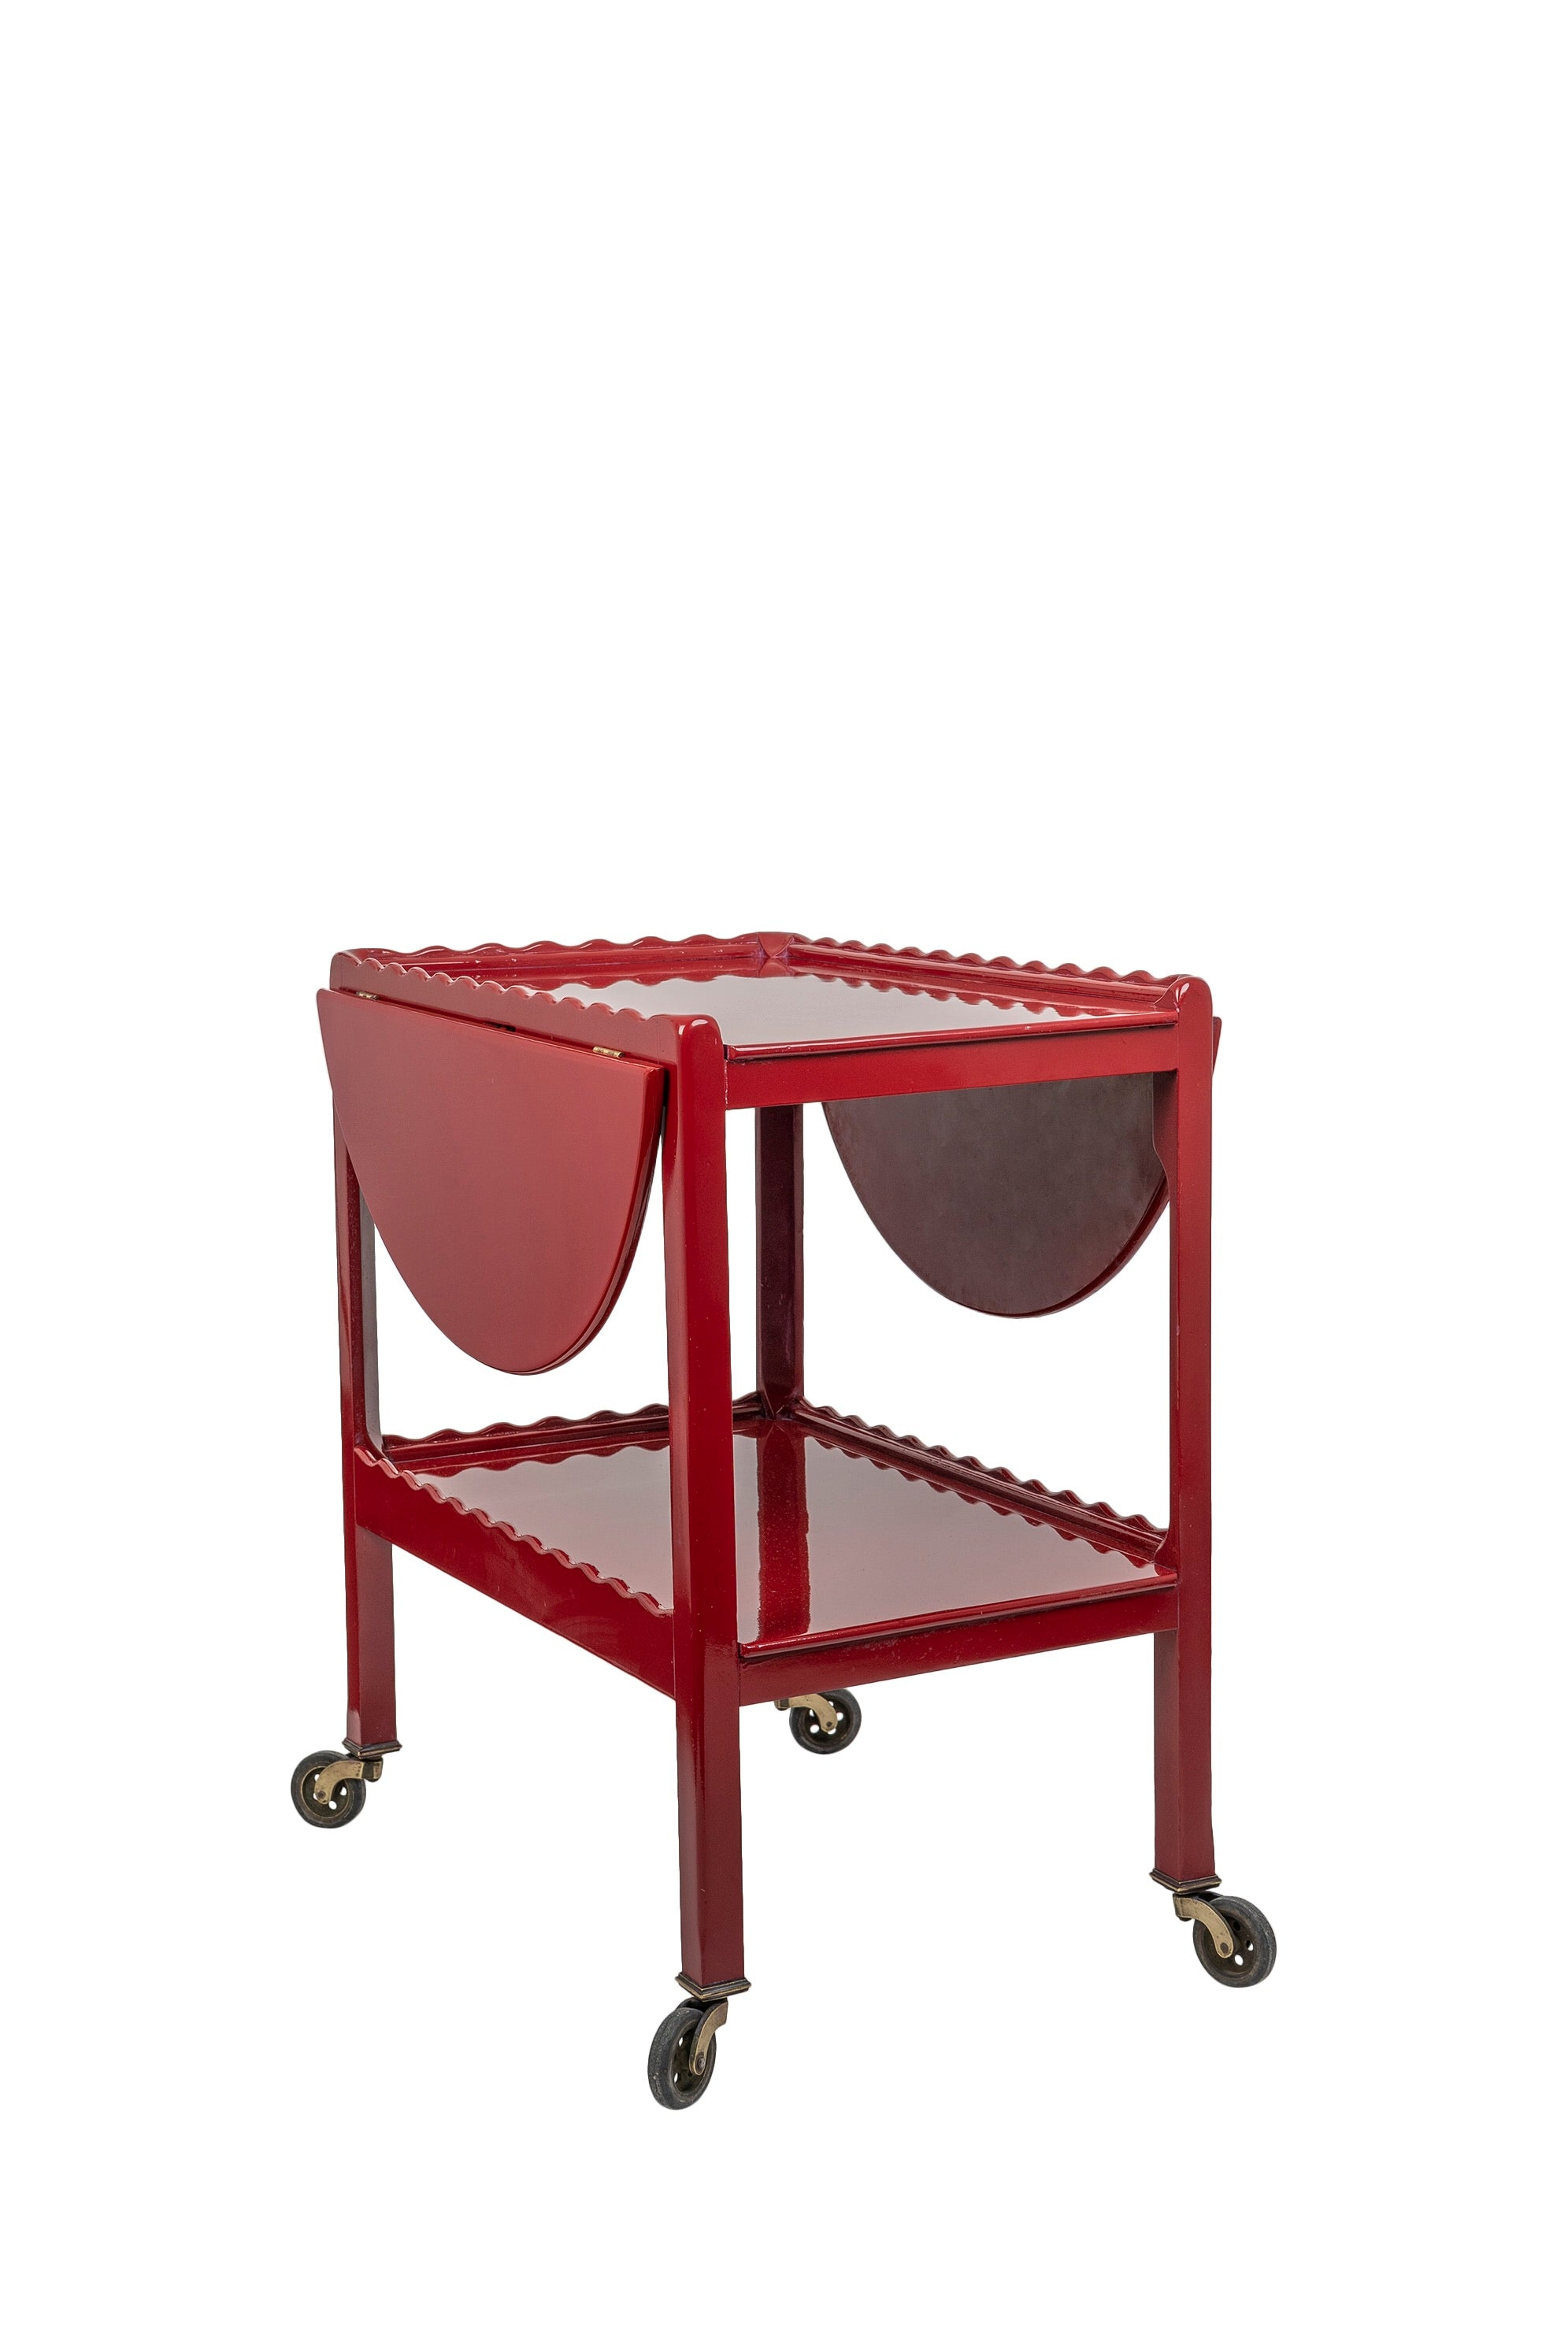 Vintage Berry Red Hand-Lacquered Two-Tiered Winged Scalloped Drinks Trolley